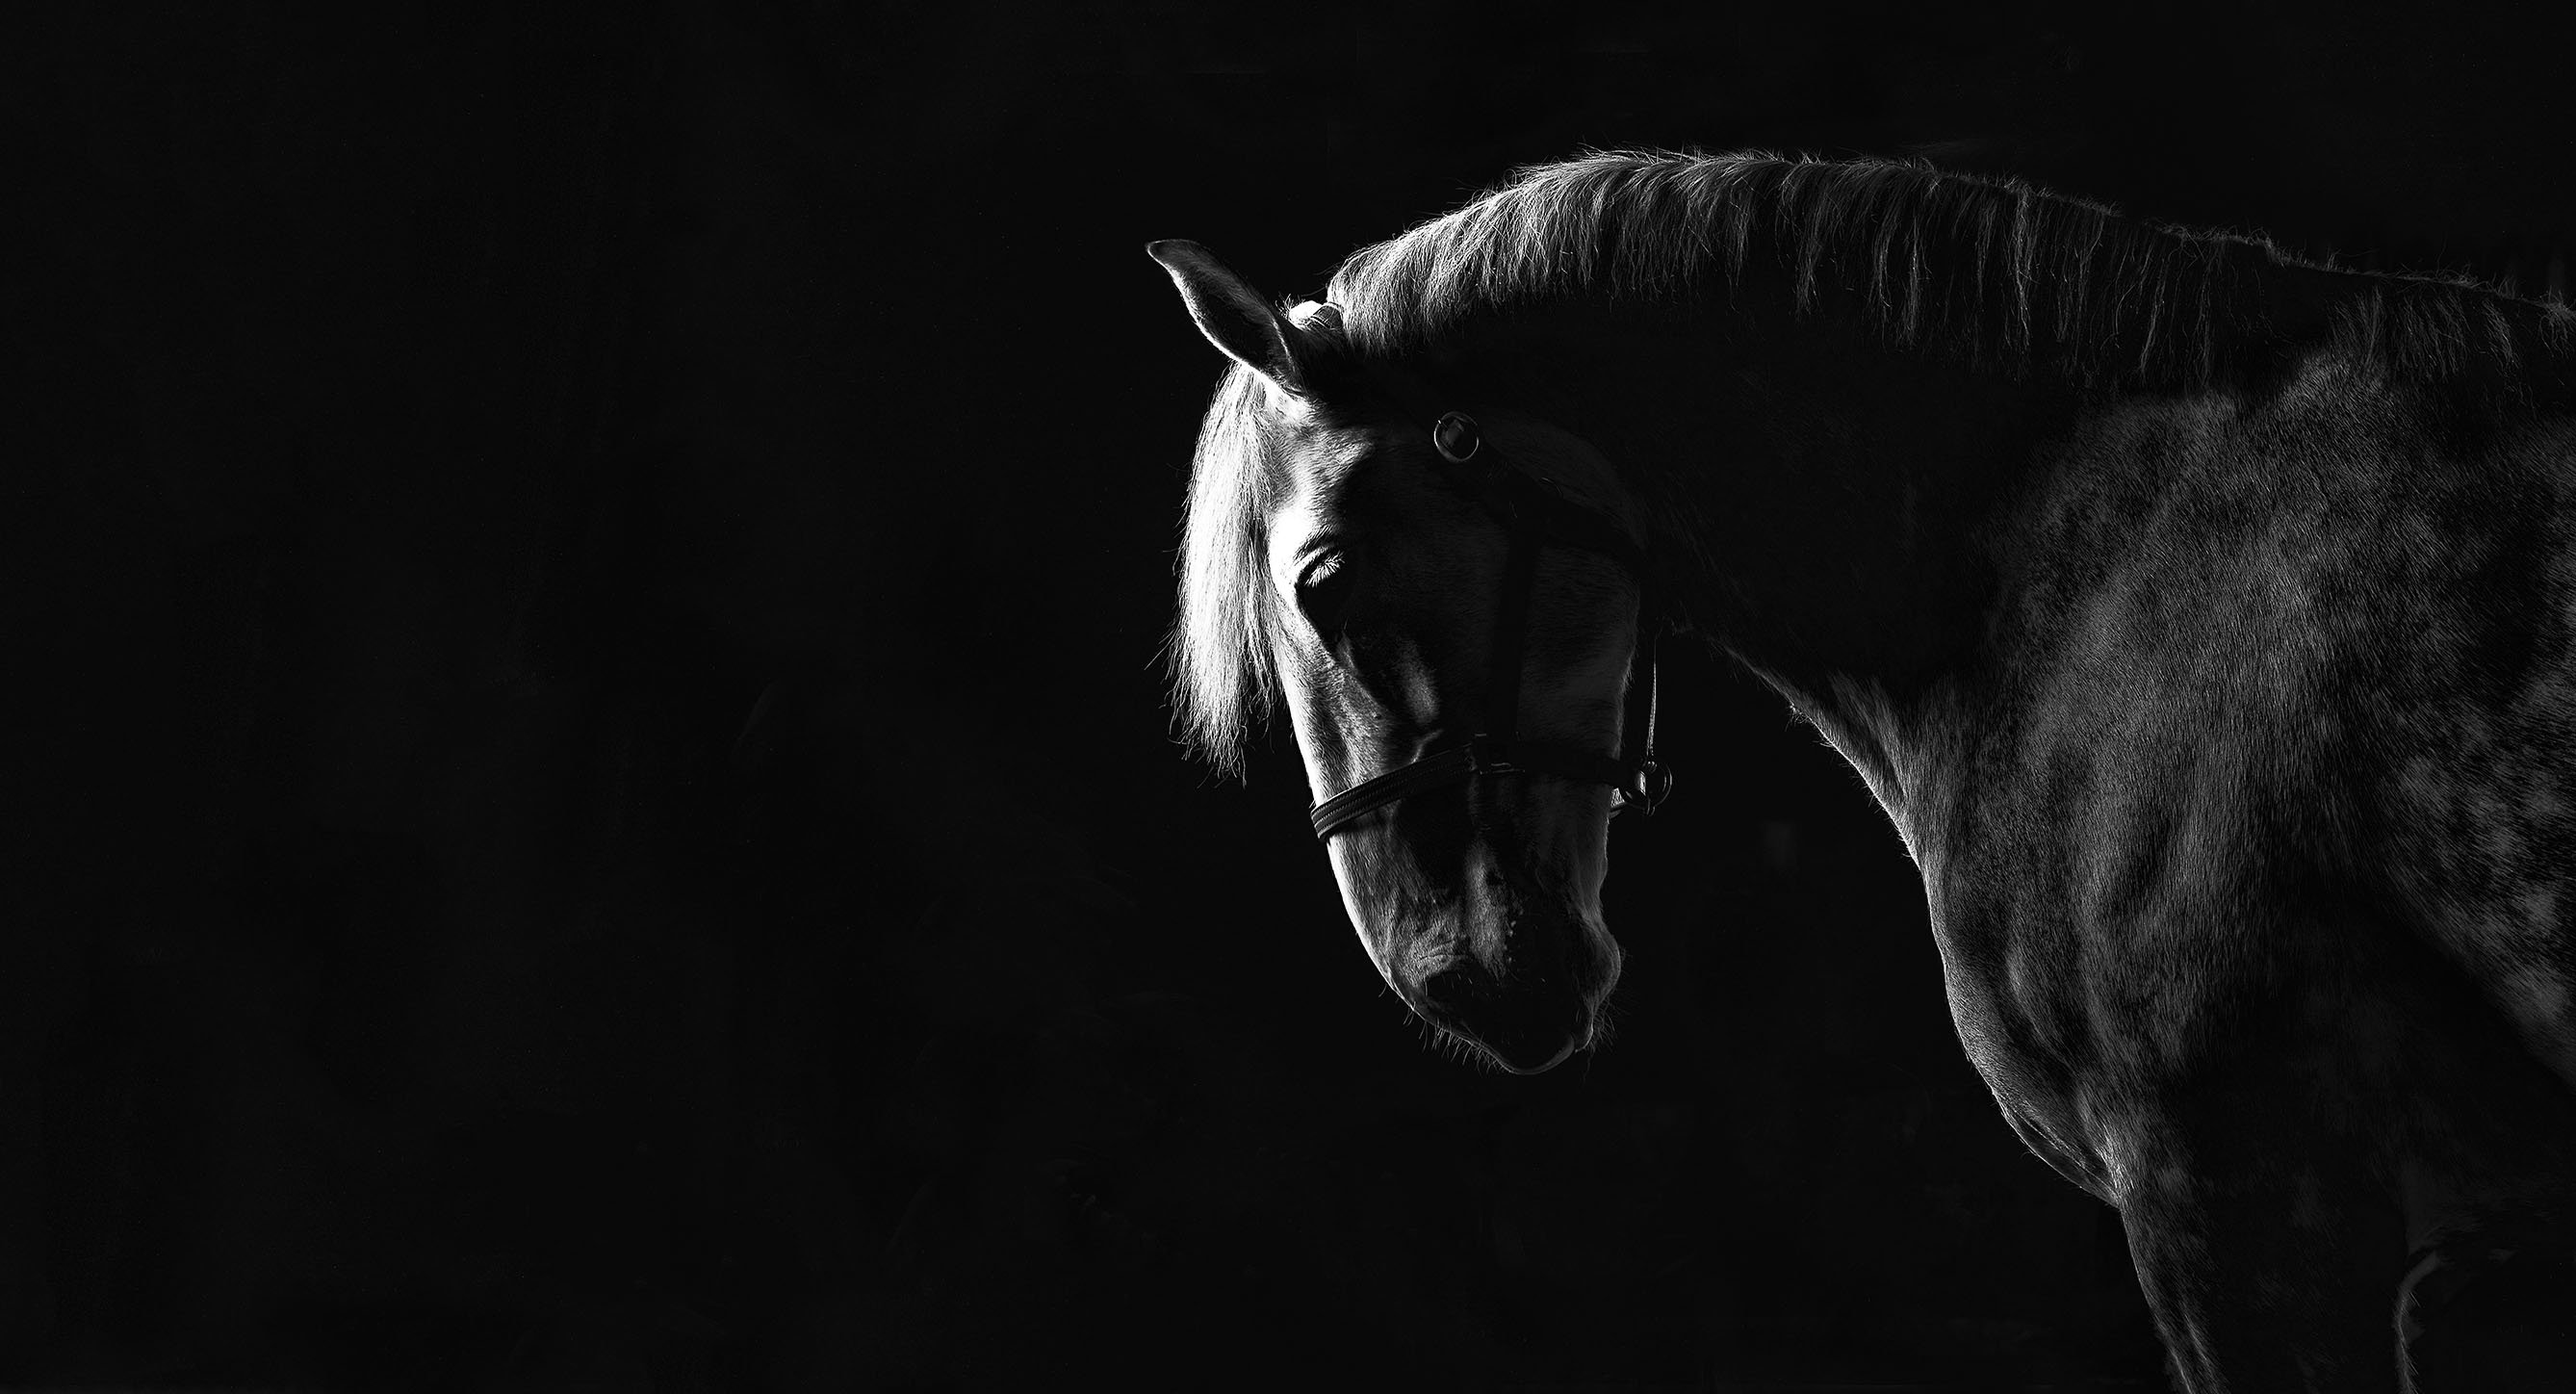 Image from Equus Photography